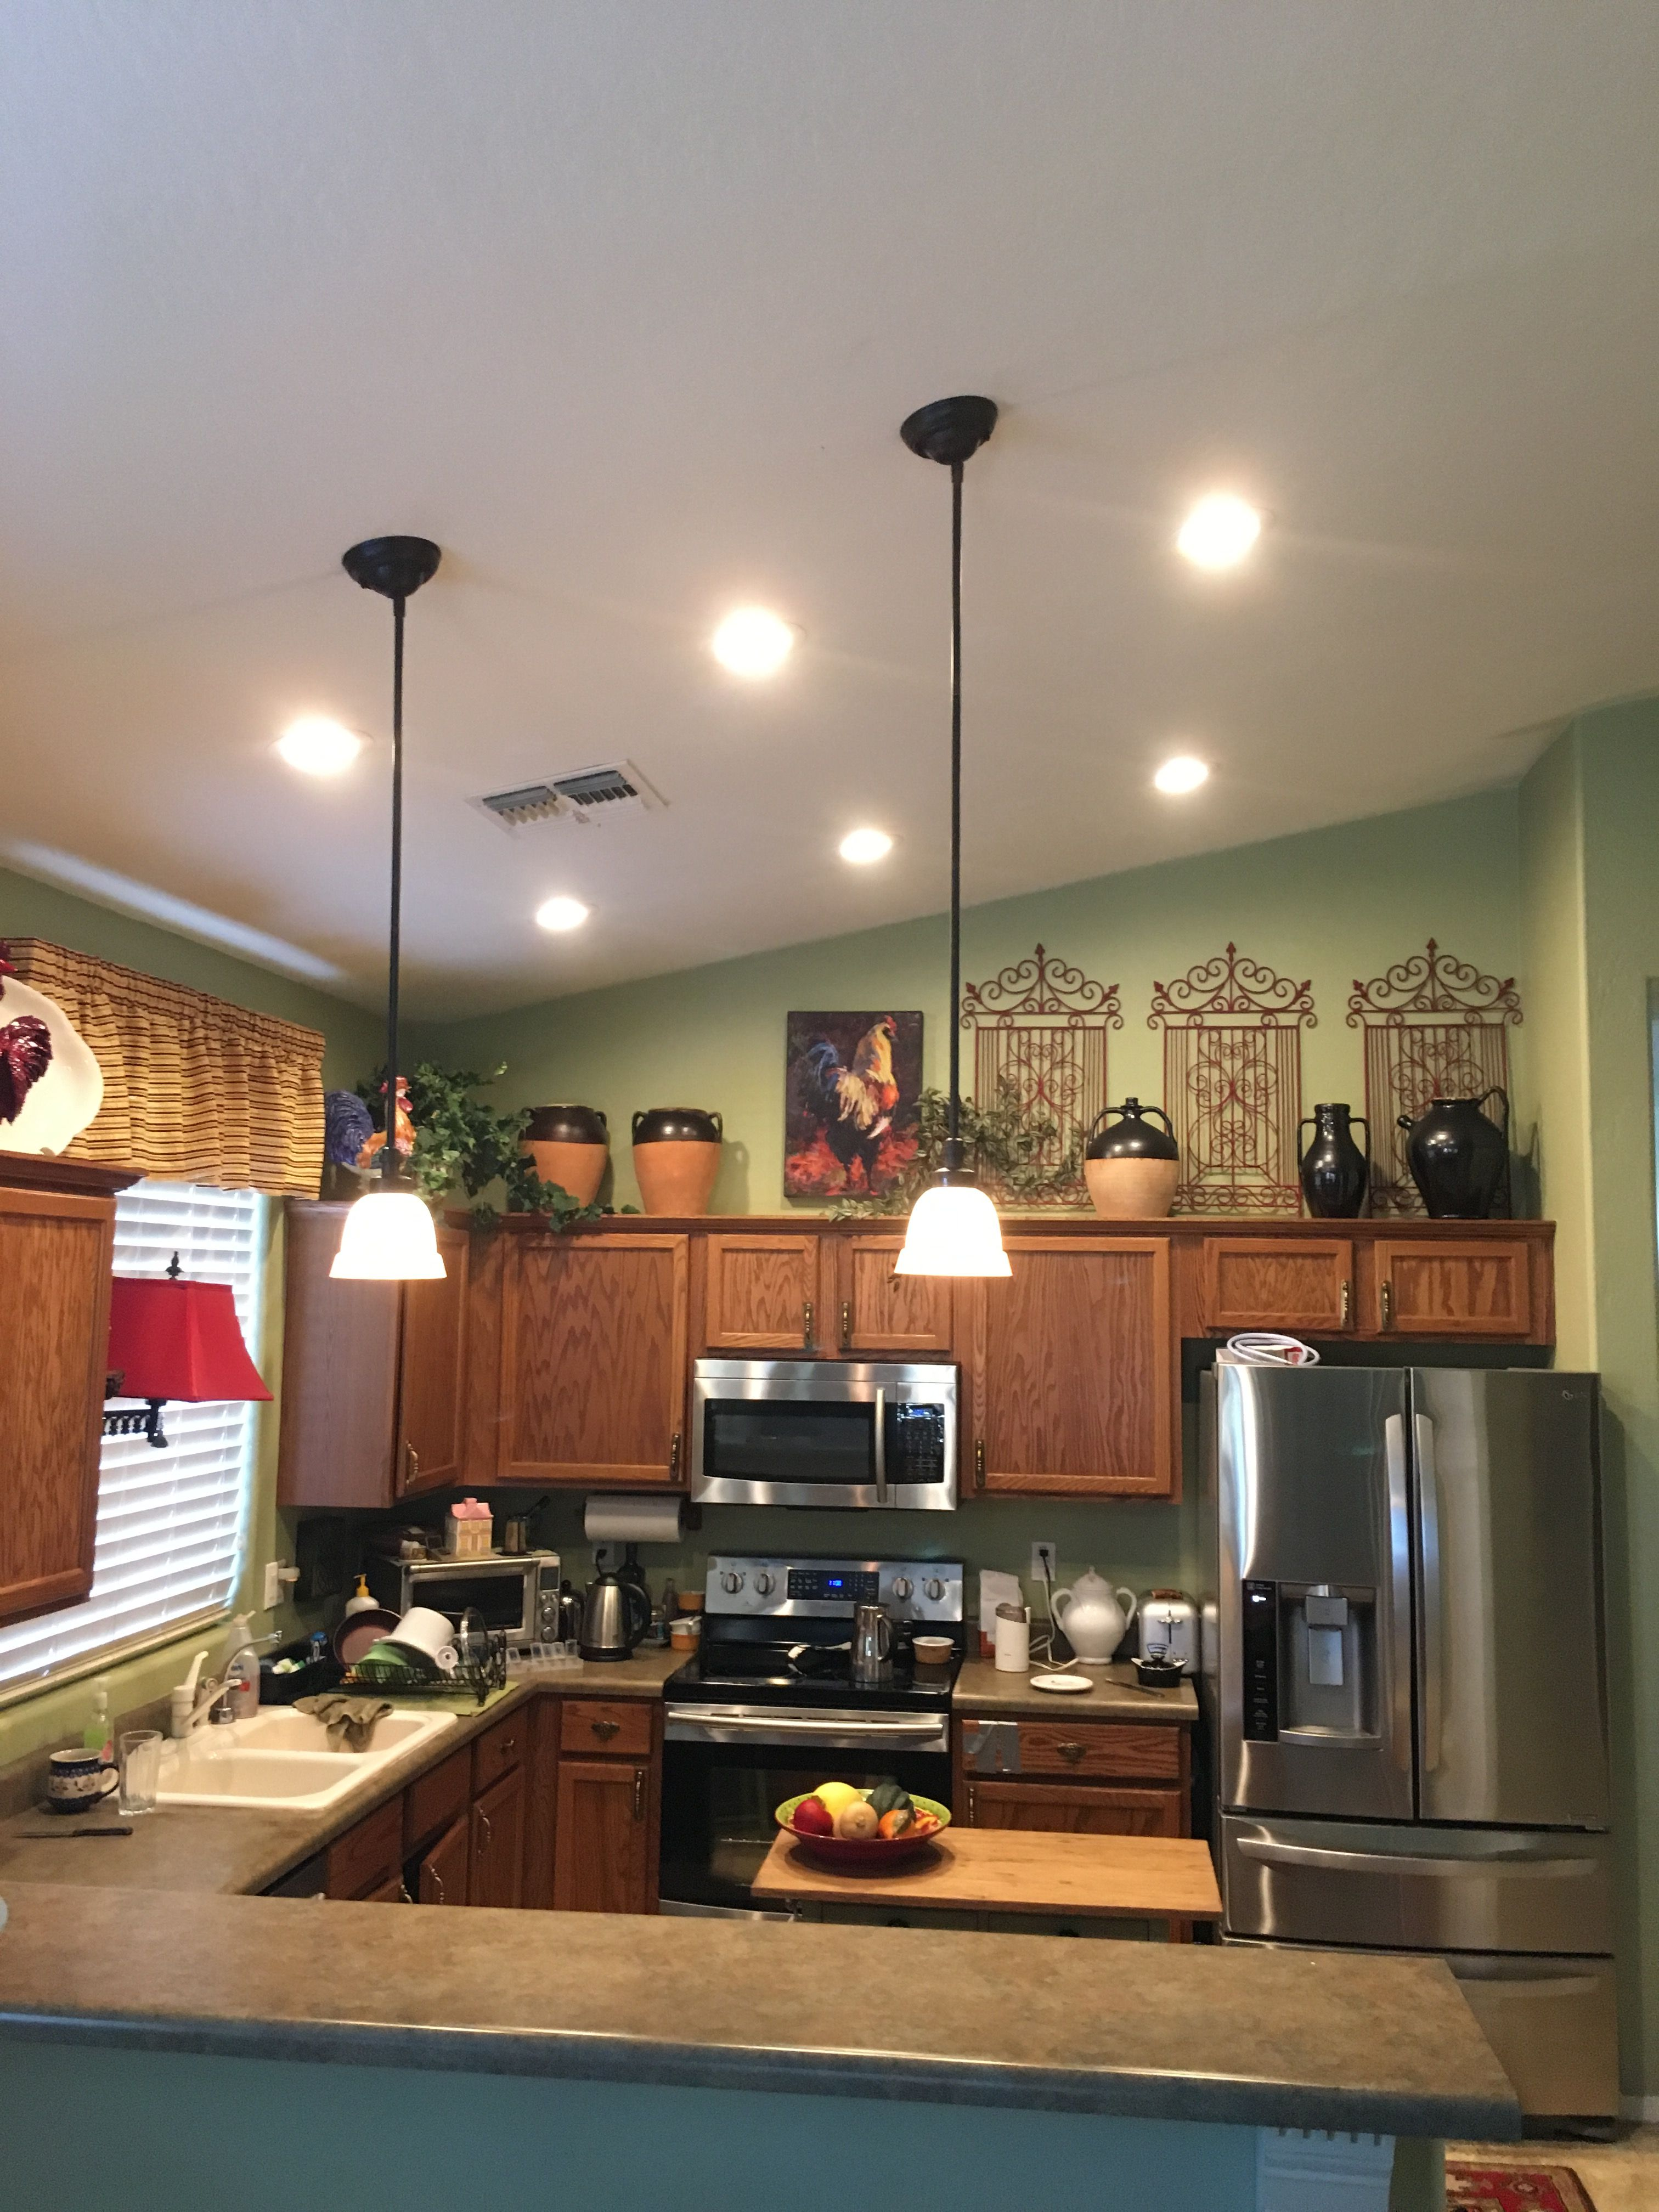 Install Recessed Lighting In A Kitchen: AZ Recessed Lighting Installation Of LEDs In Kitchen. AZ